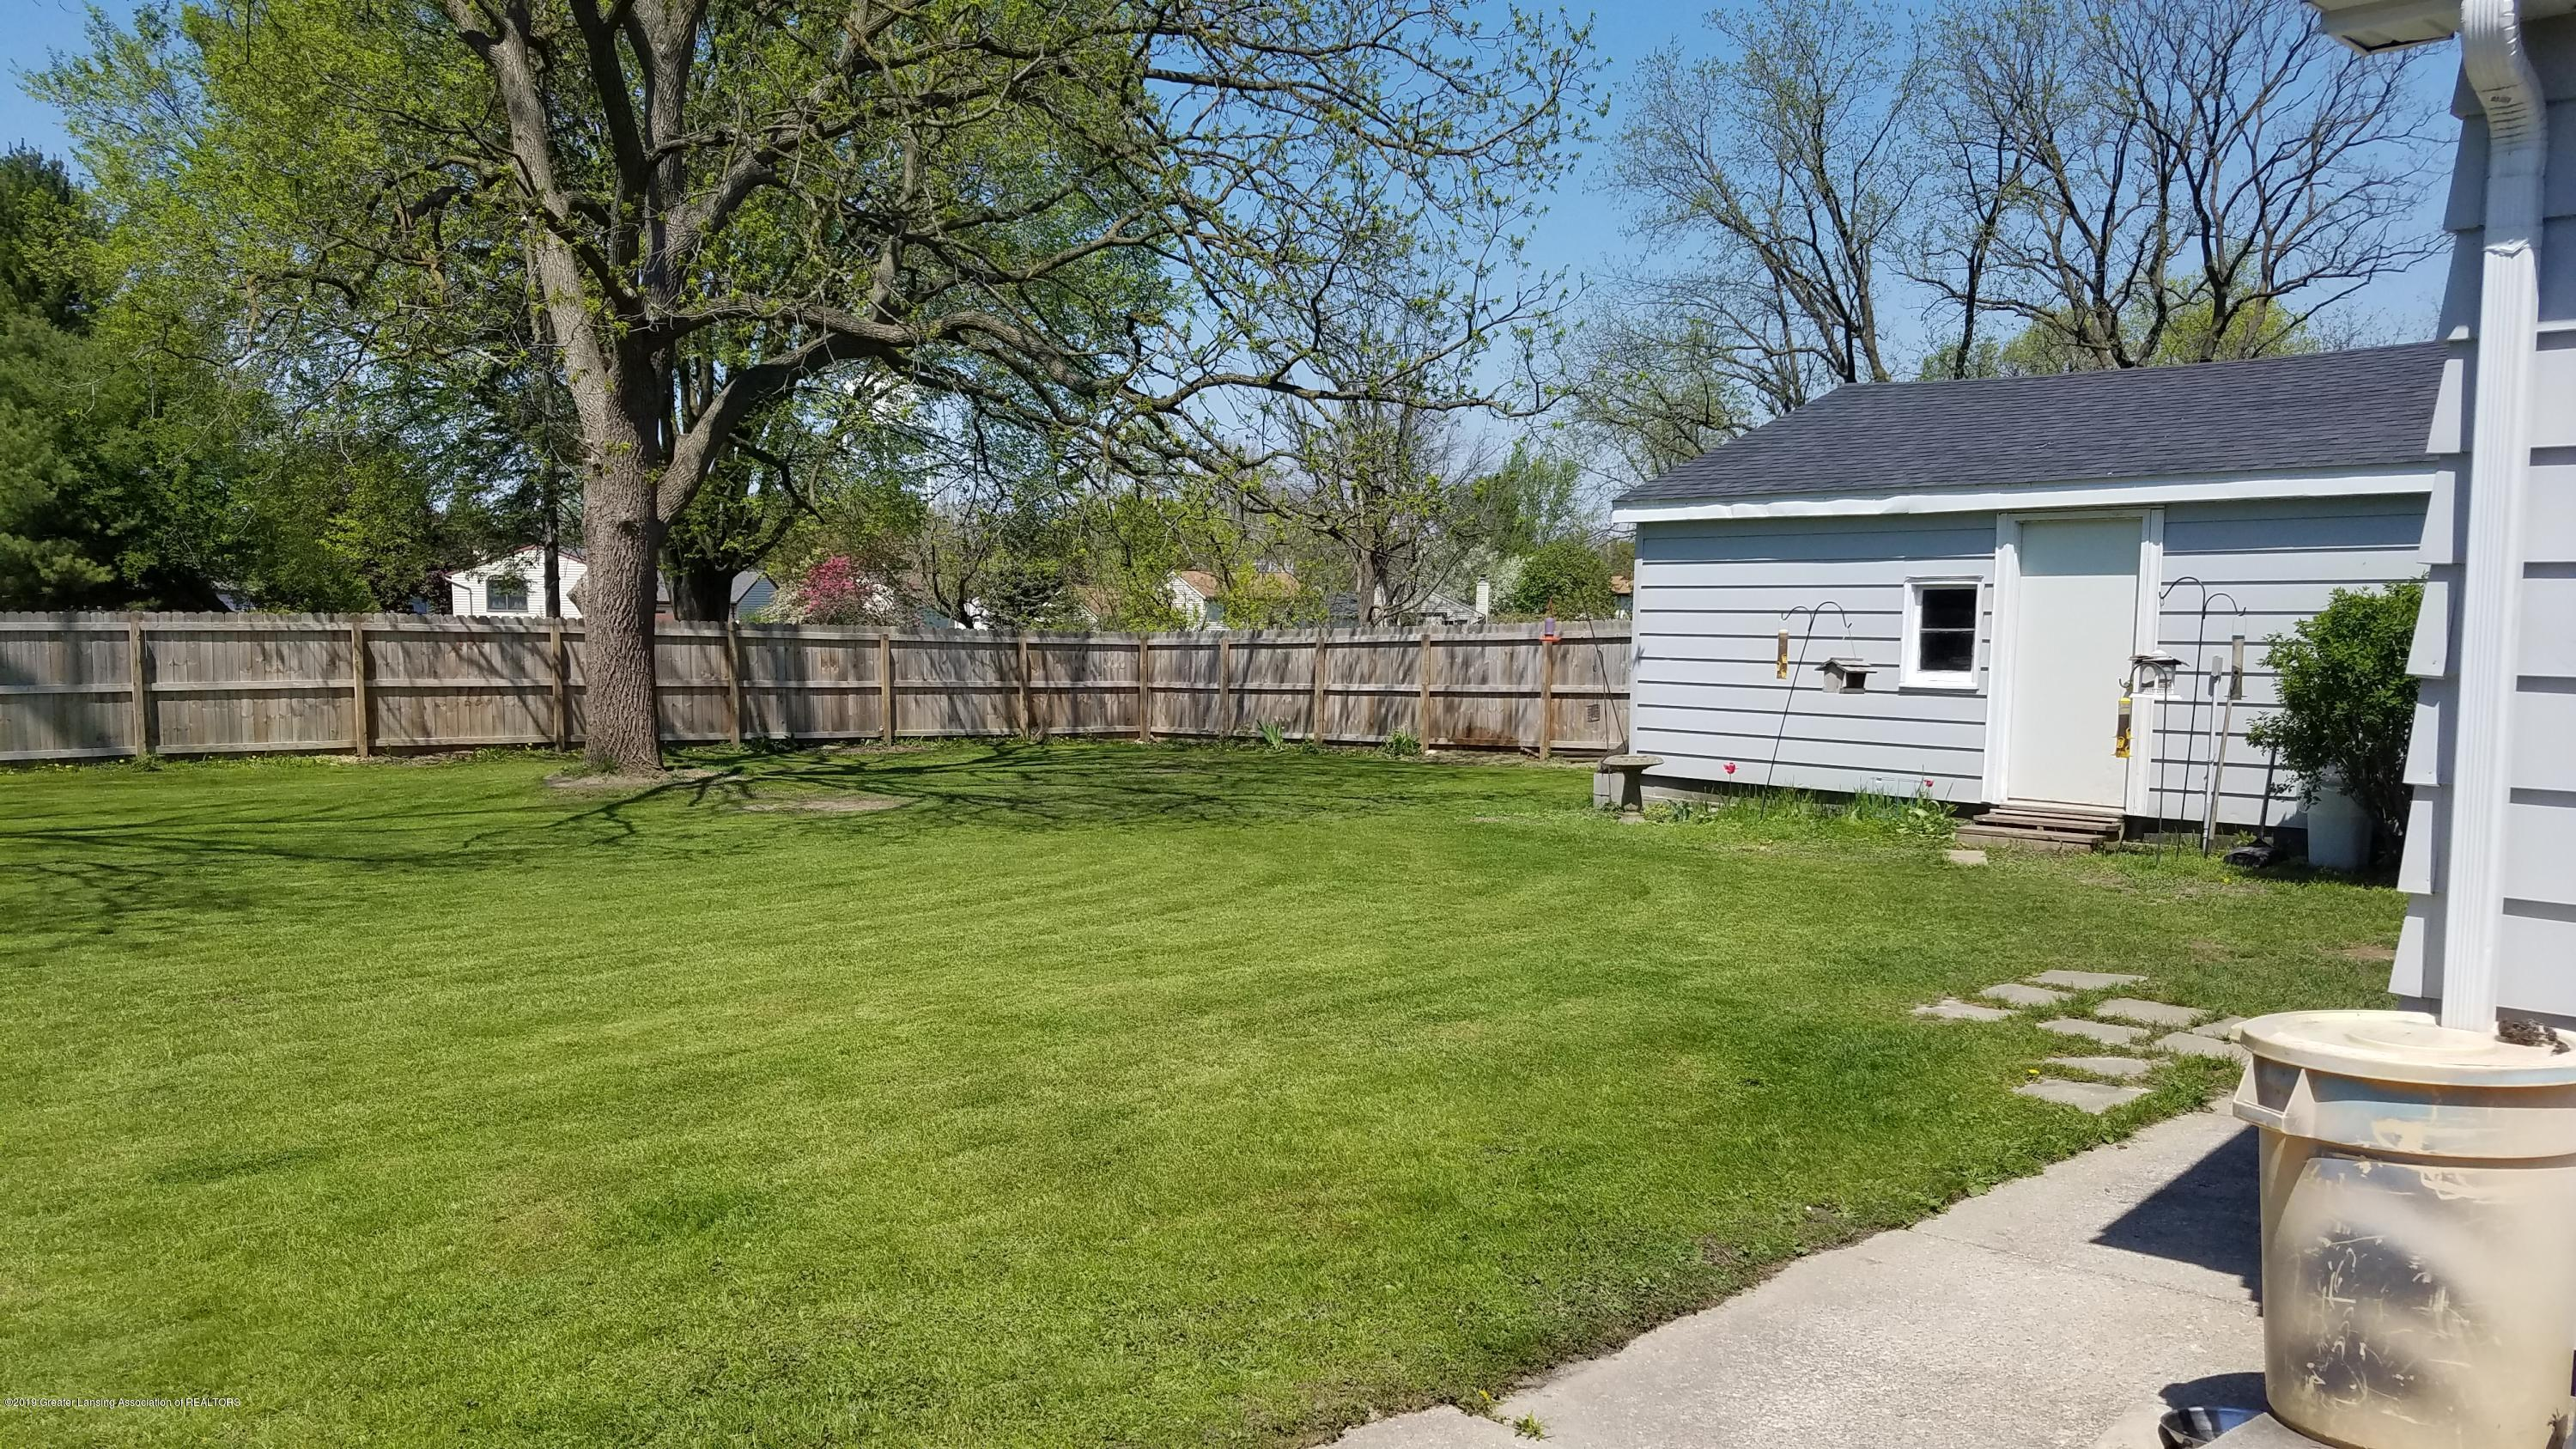 622 Stoll Rd - 20190515_122514 - 15